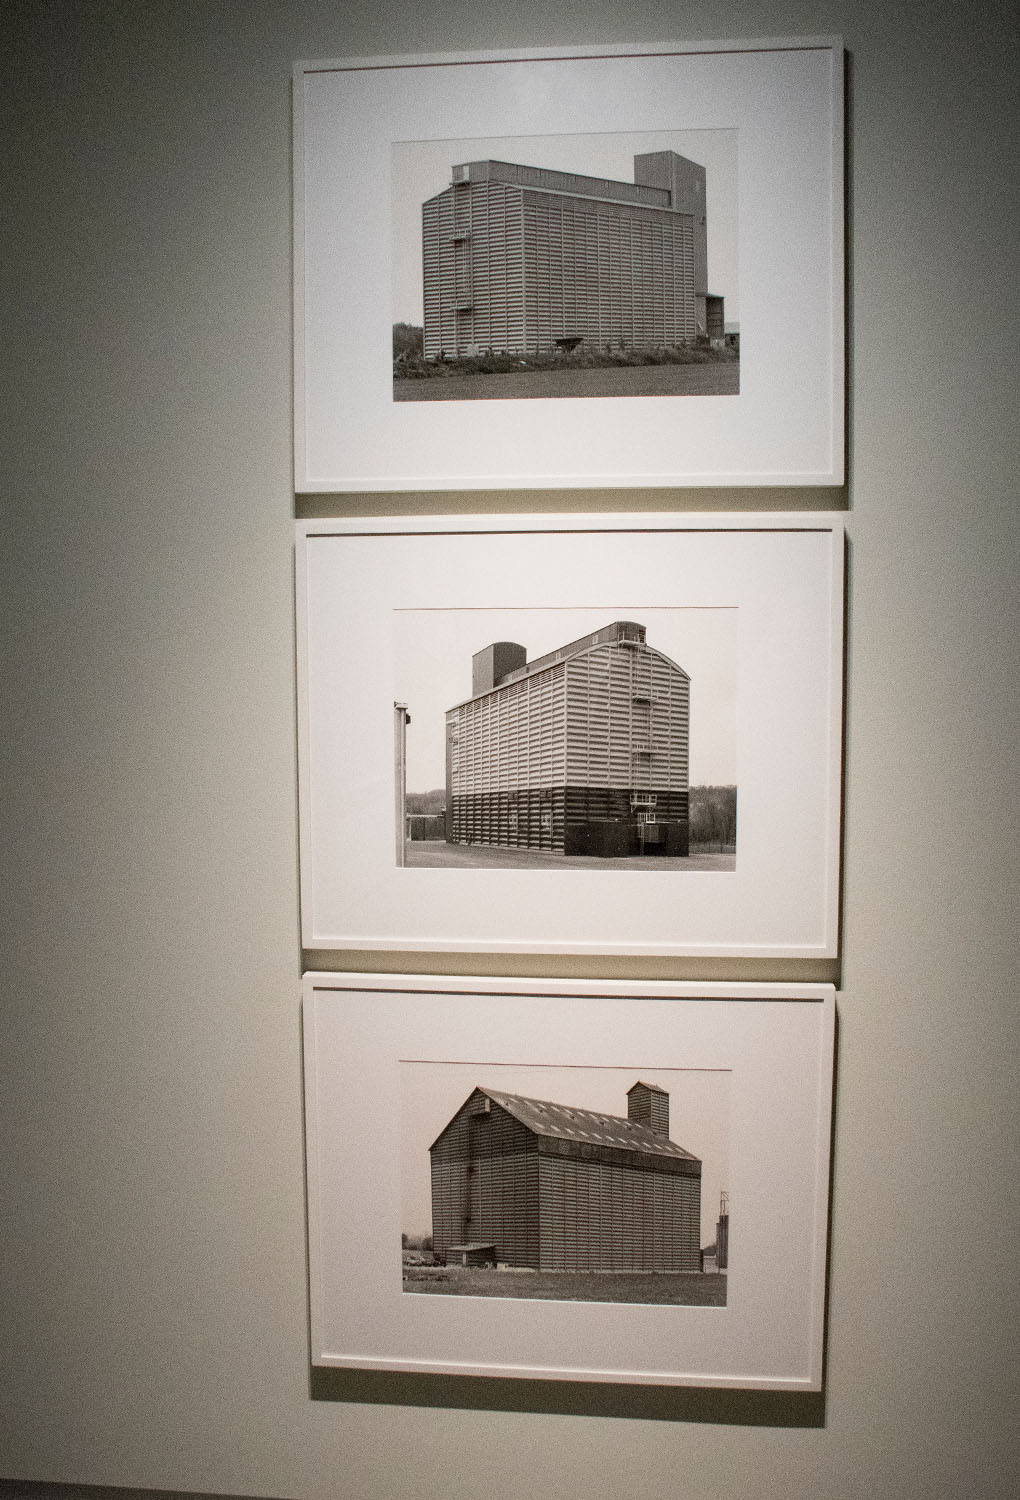 Bernd and Hilla Becher - France 2000 and 2006